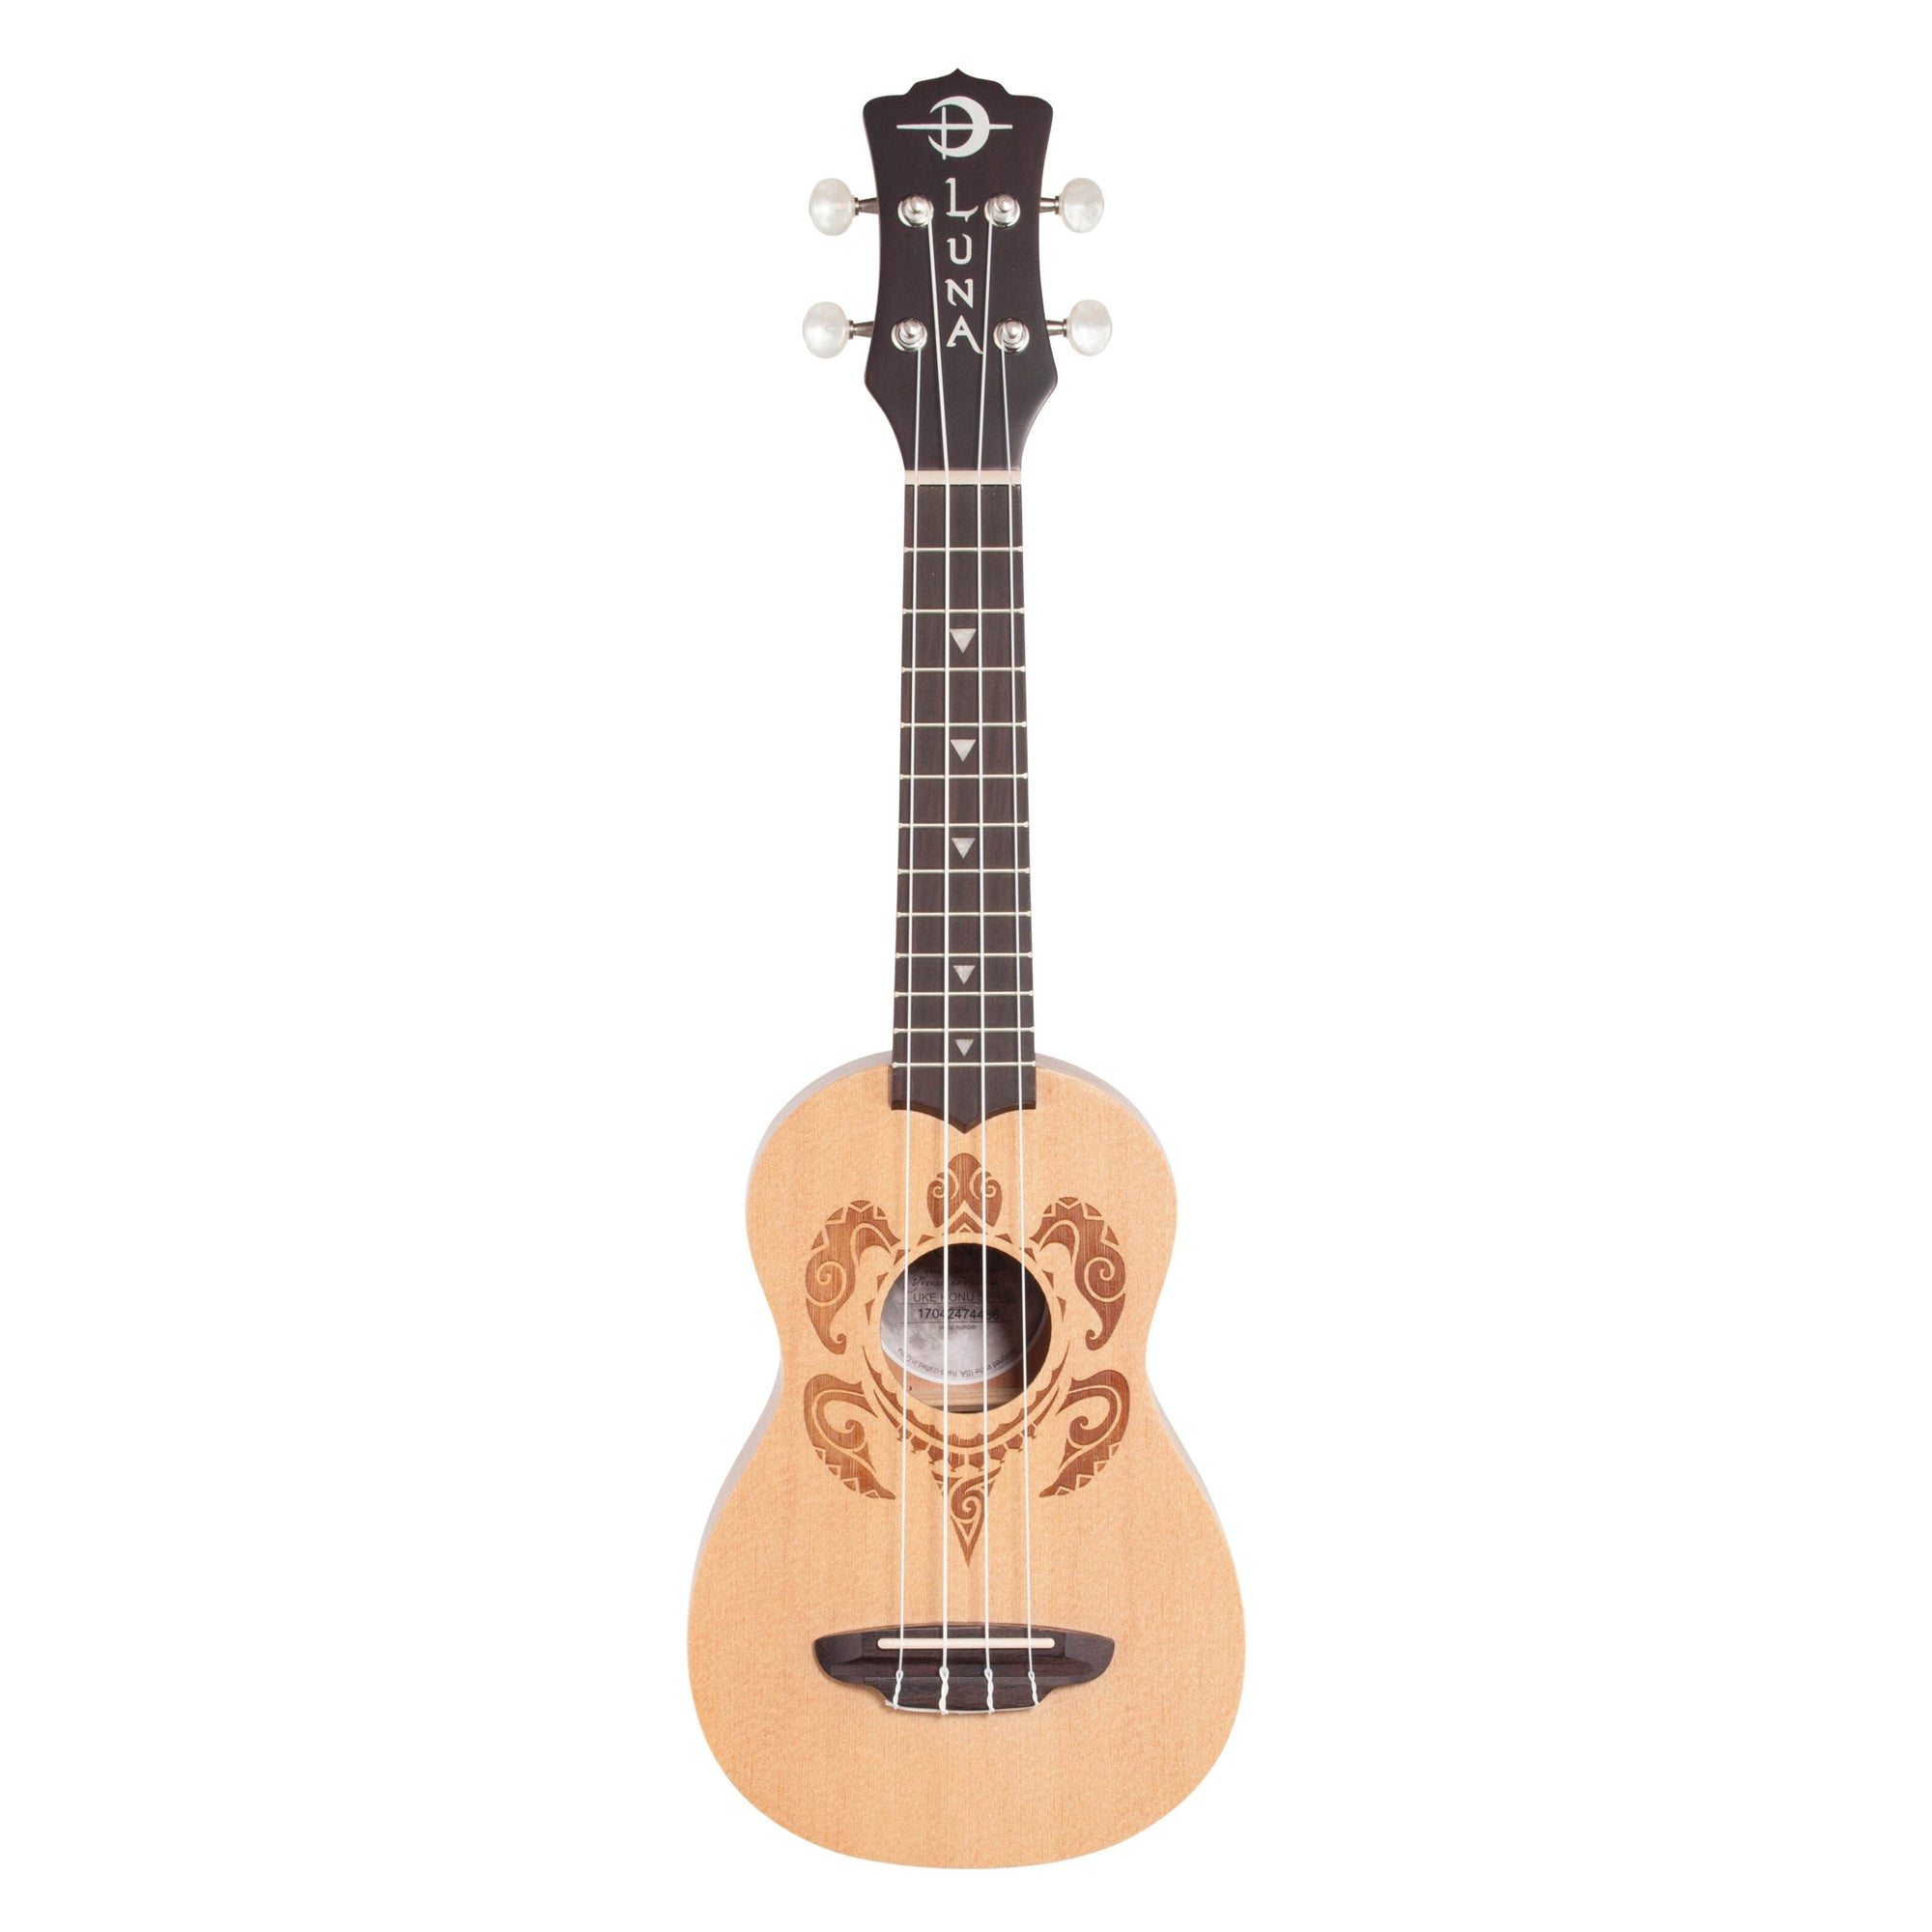 Luna Honu Soprano Ukulele (with Gig Bag), Honu Turtle